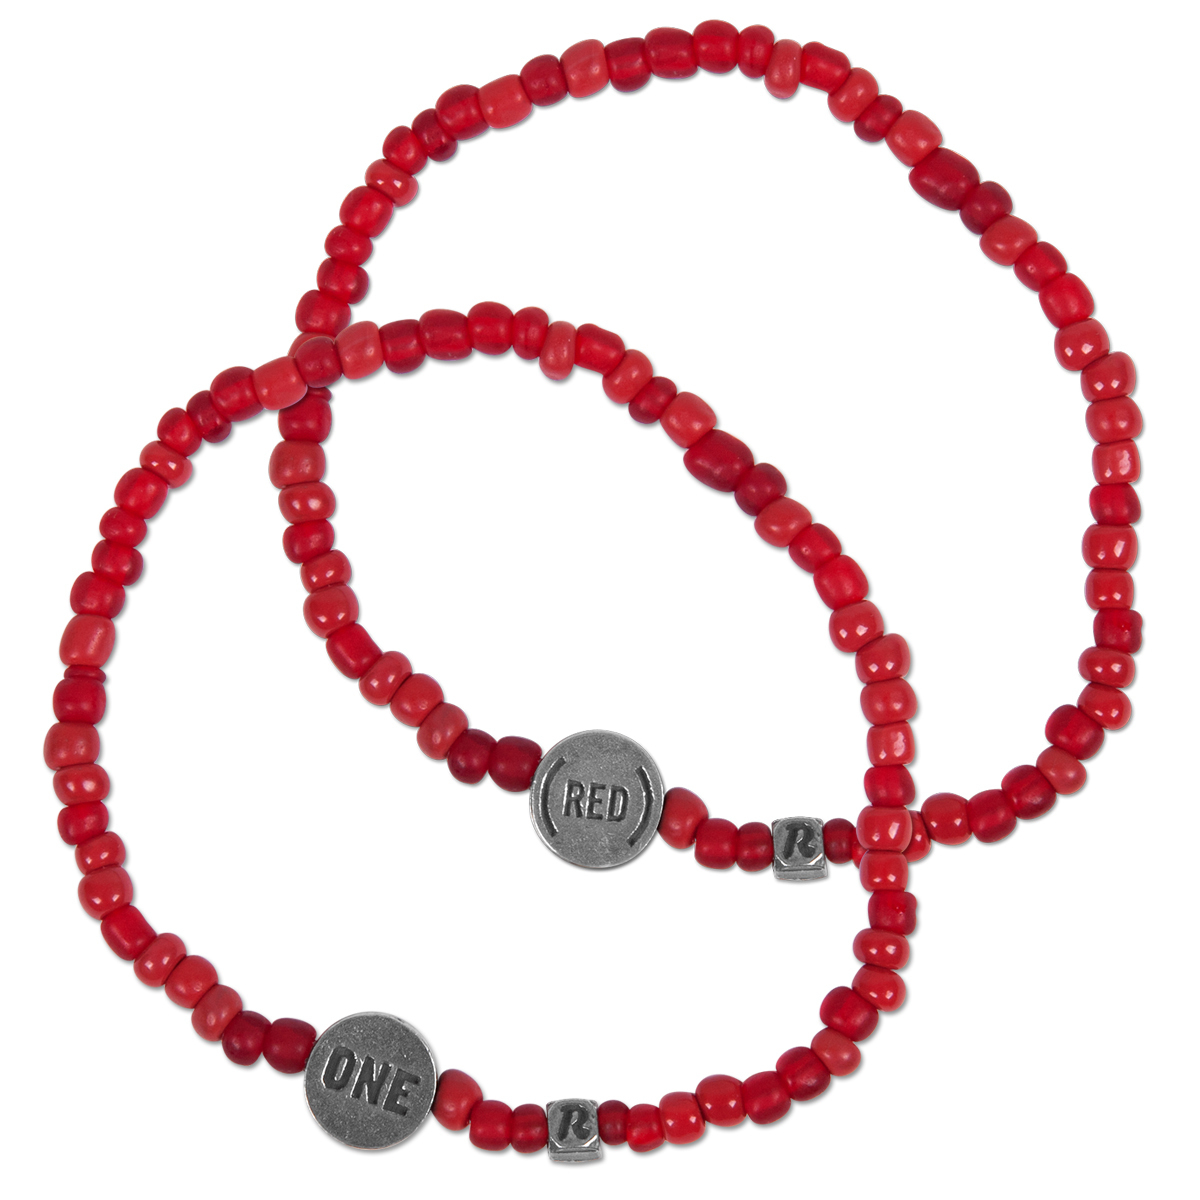 ONE and (RED) Beaded Bracelet